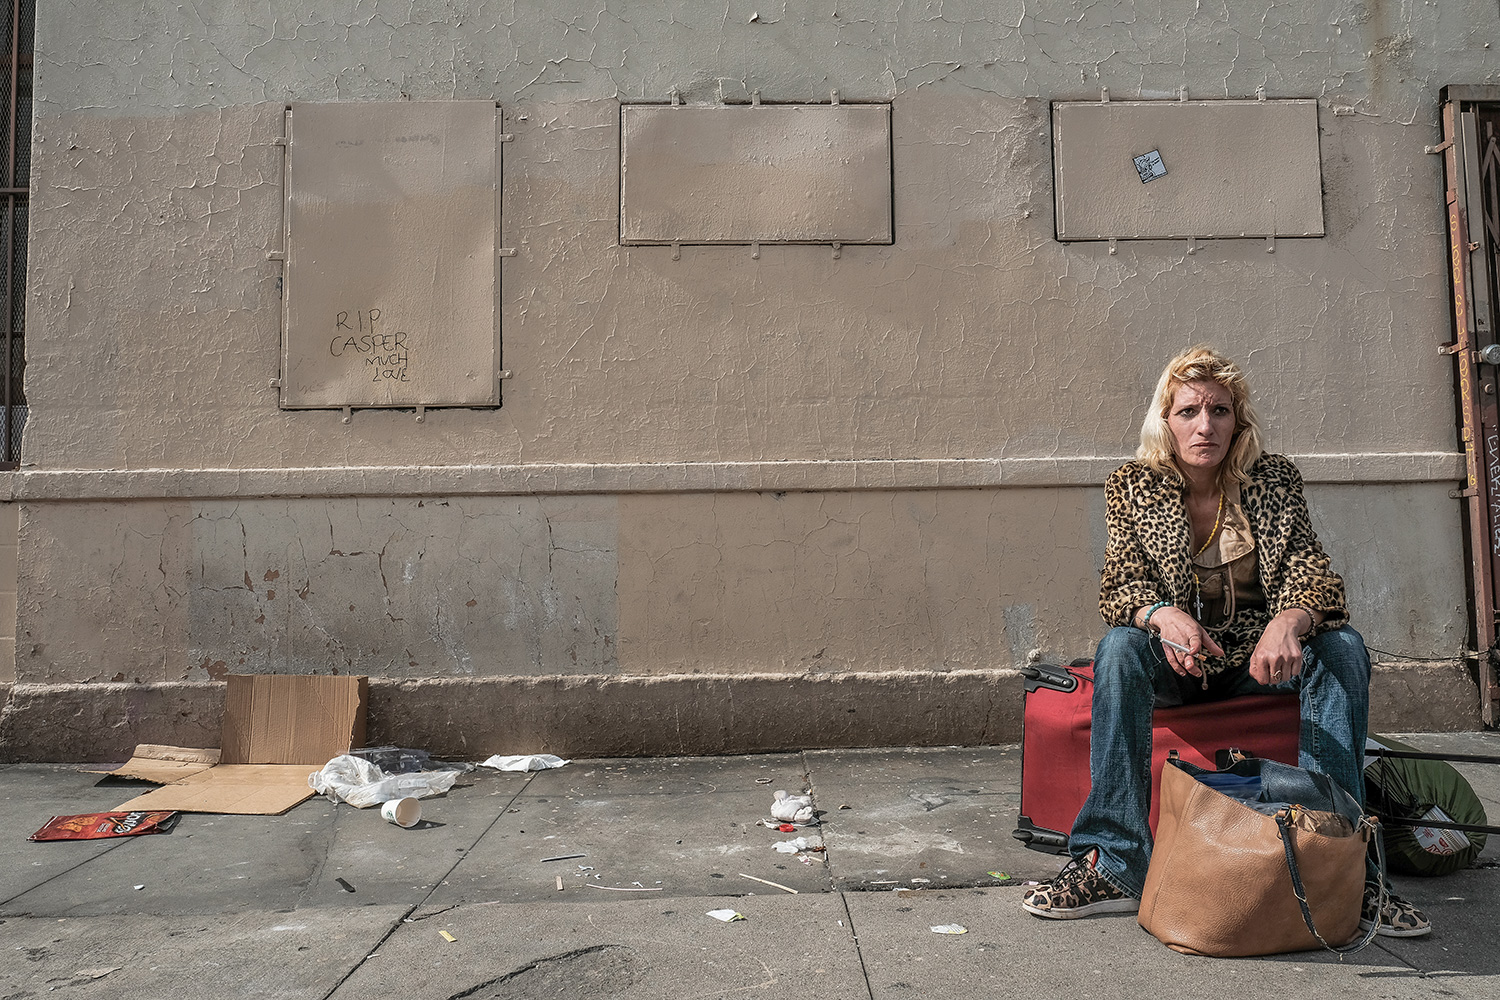 Floating — C. sits at 4th and Towne Ave after using heroin, lost in thought.